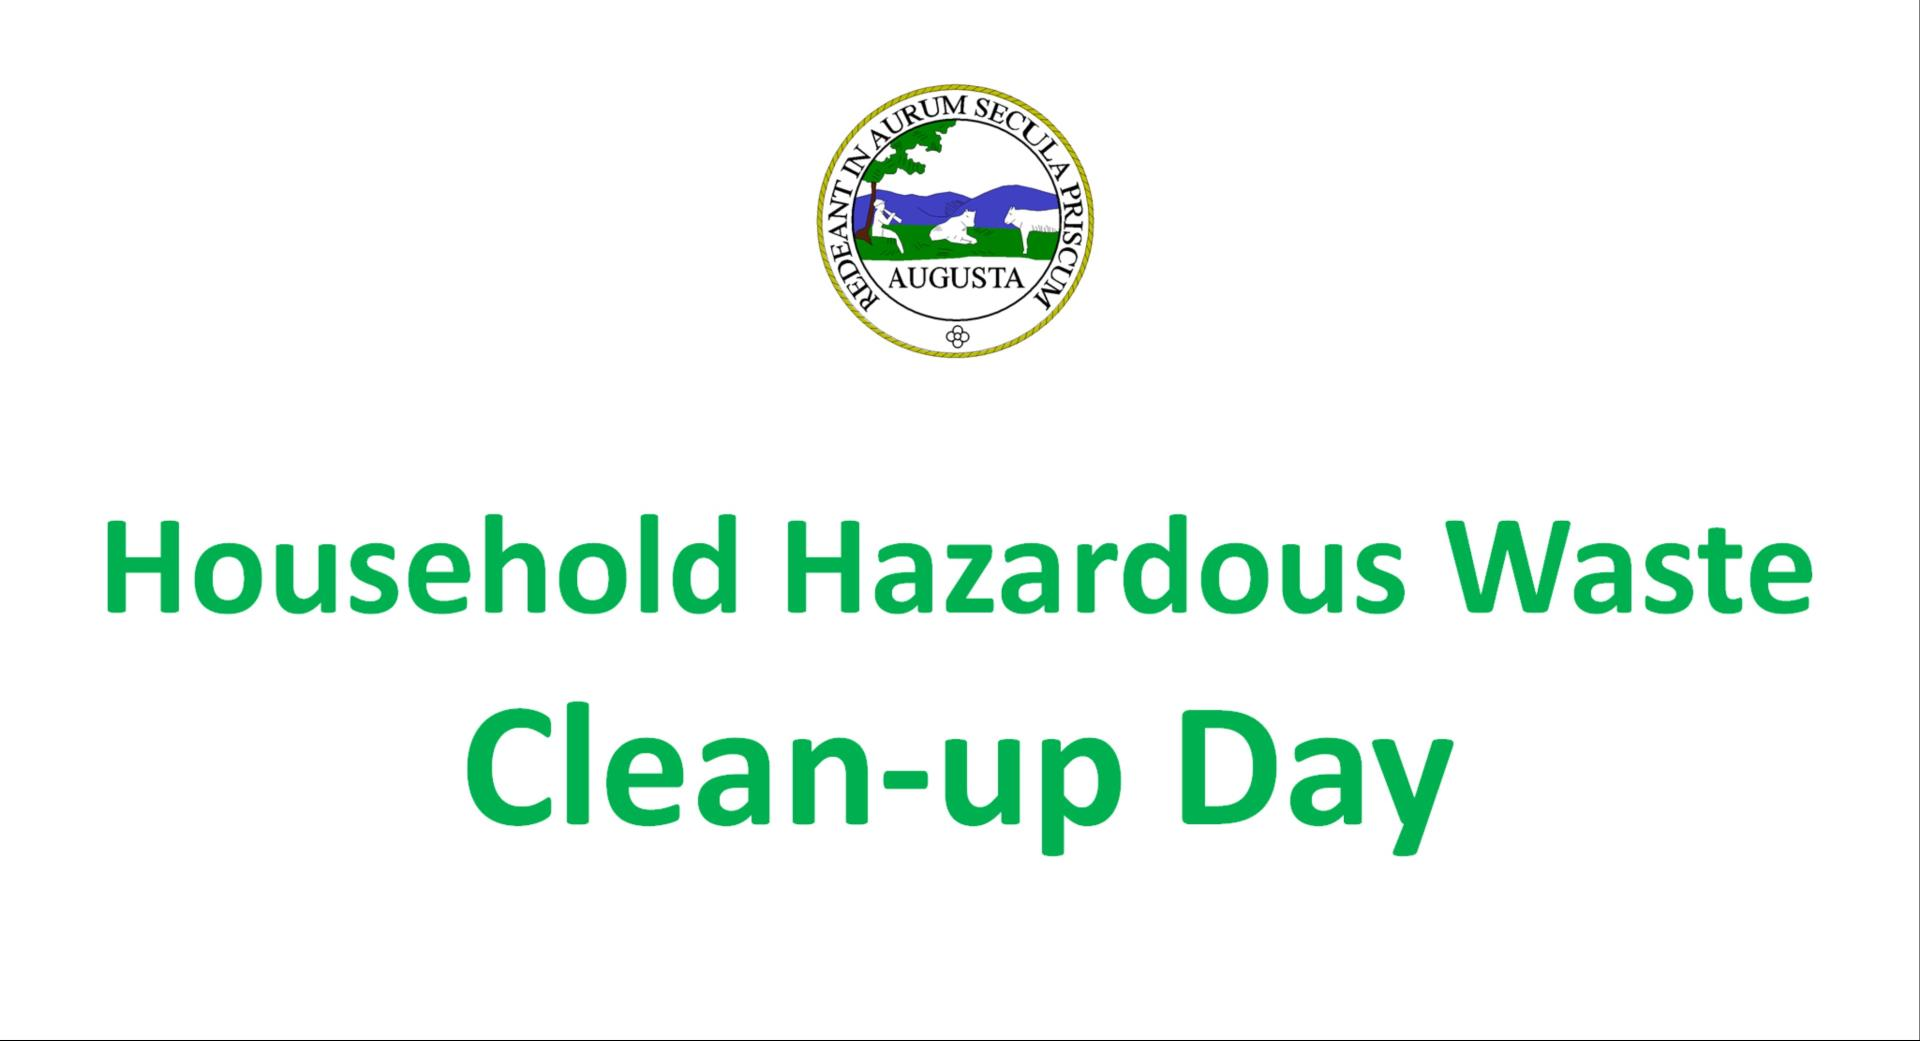 What household hazardous waste items are accepted this Saturday?